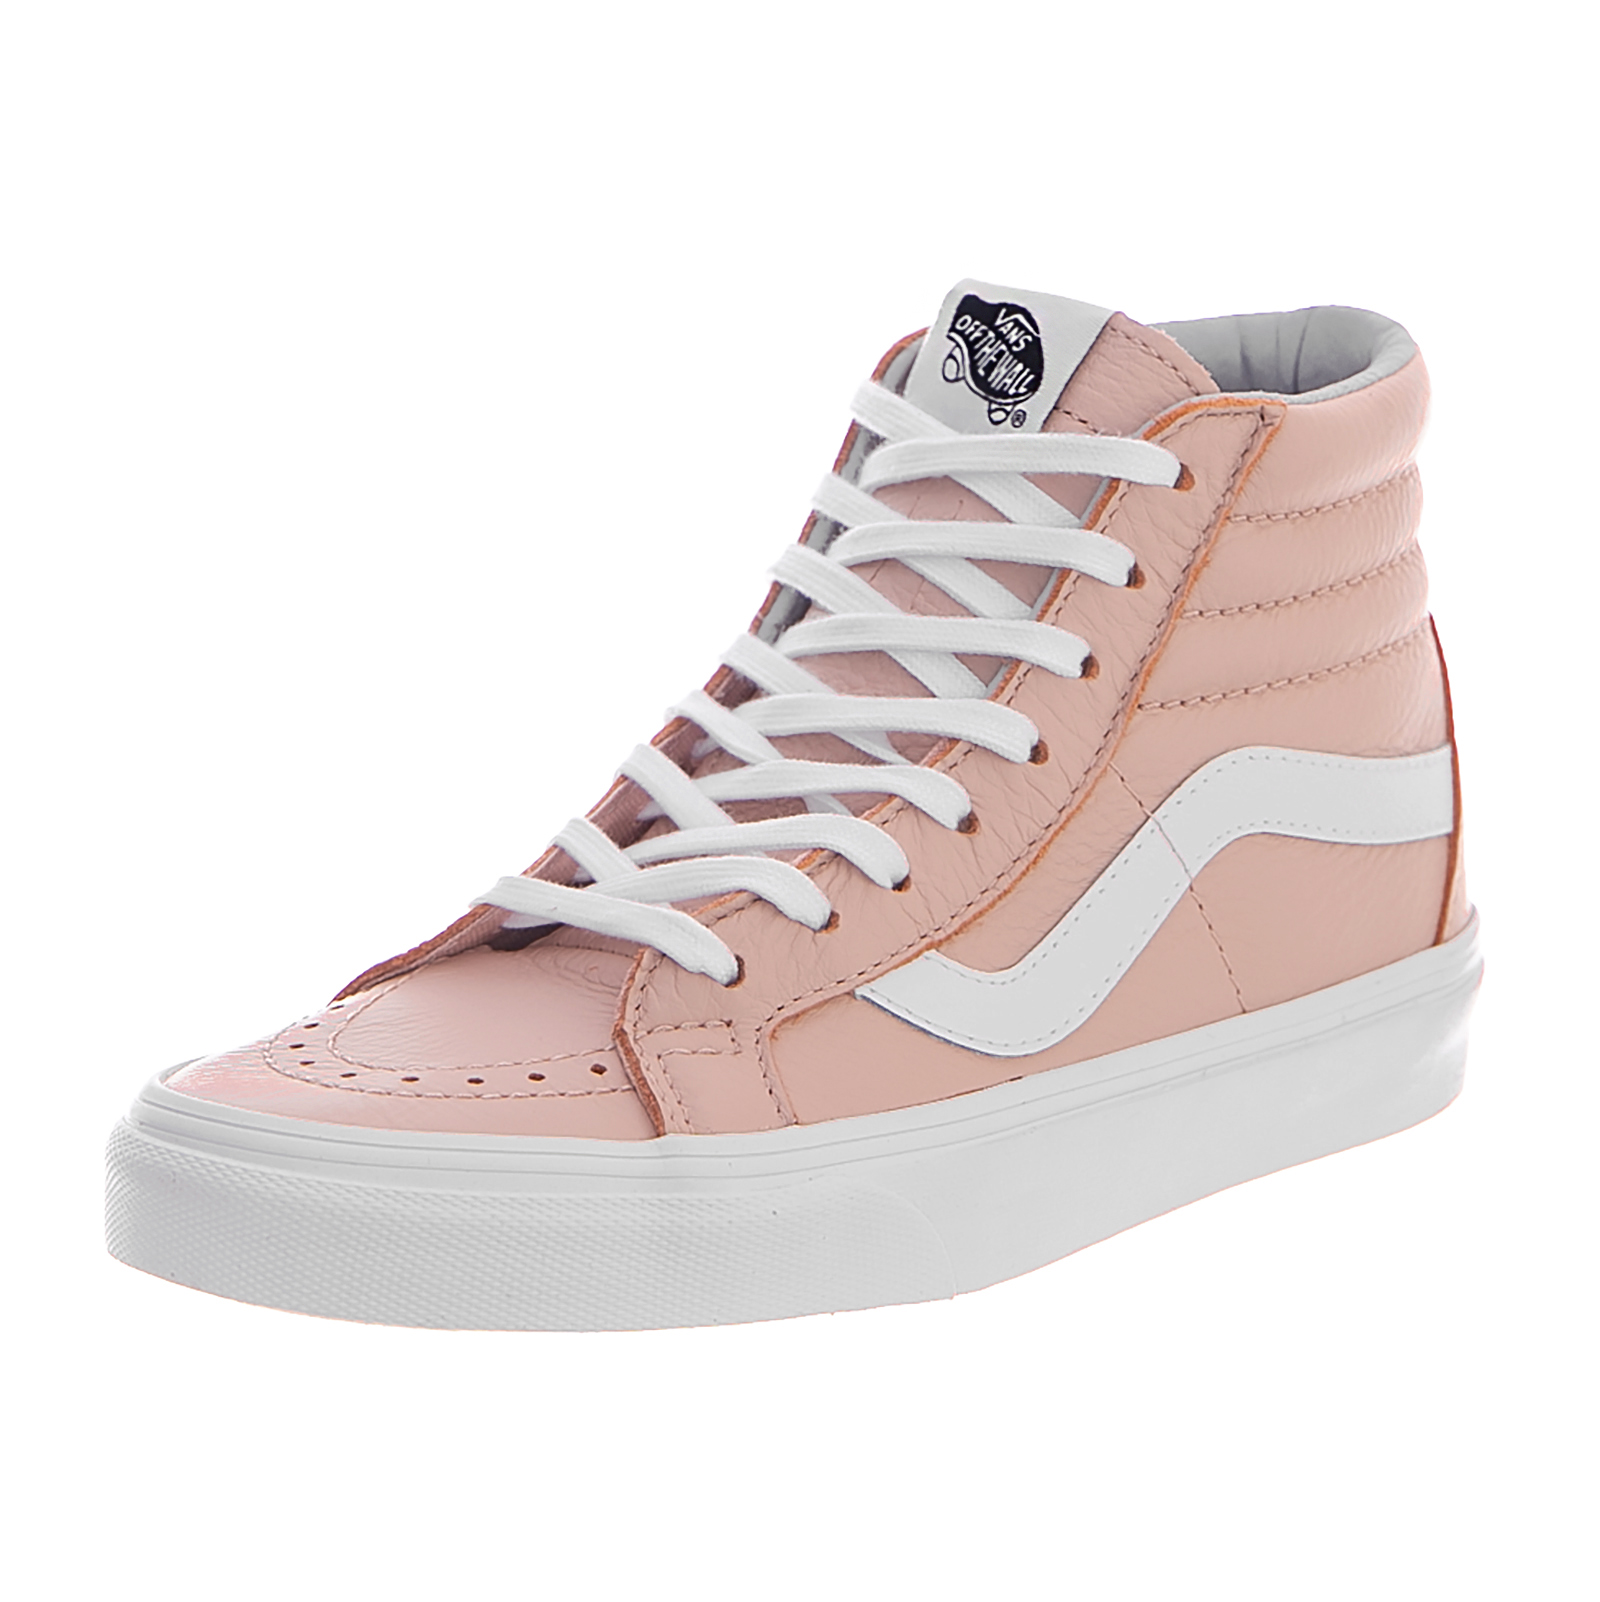 84e33b11d0 Vans Sneakers Ua Sk8-Hi Reissue (Leather) Oxford Evening Pink